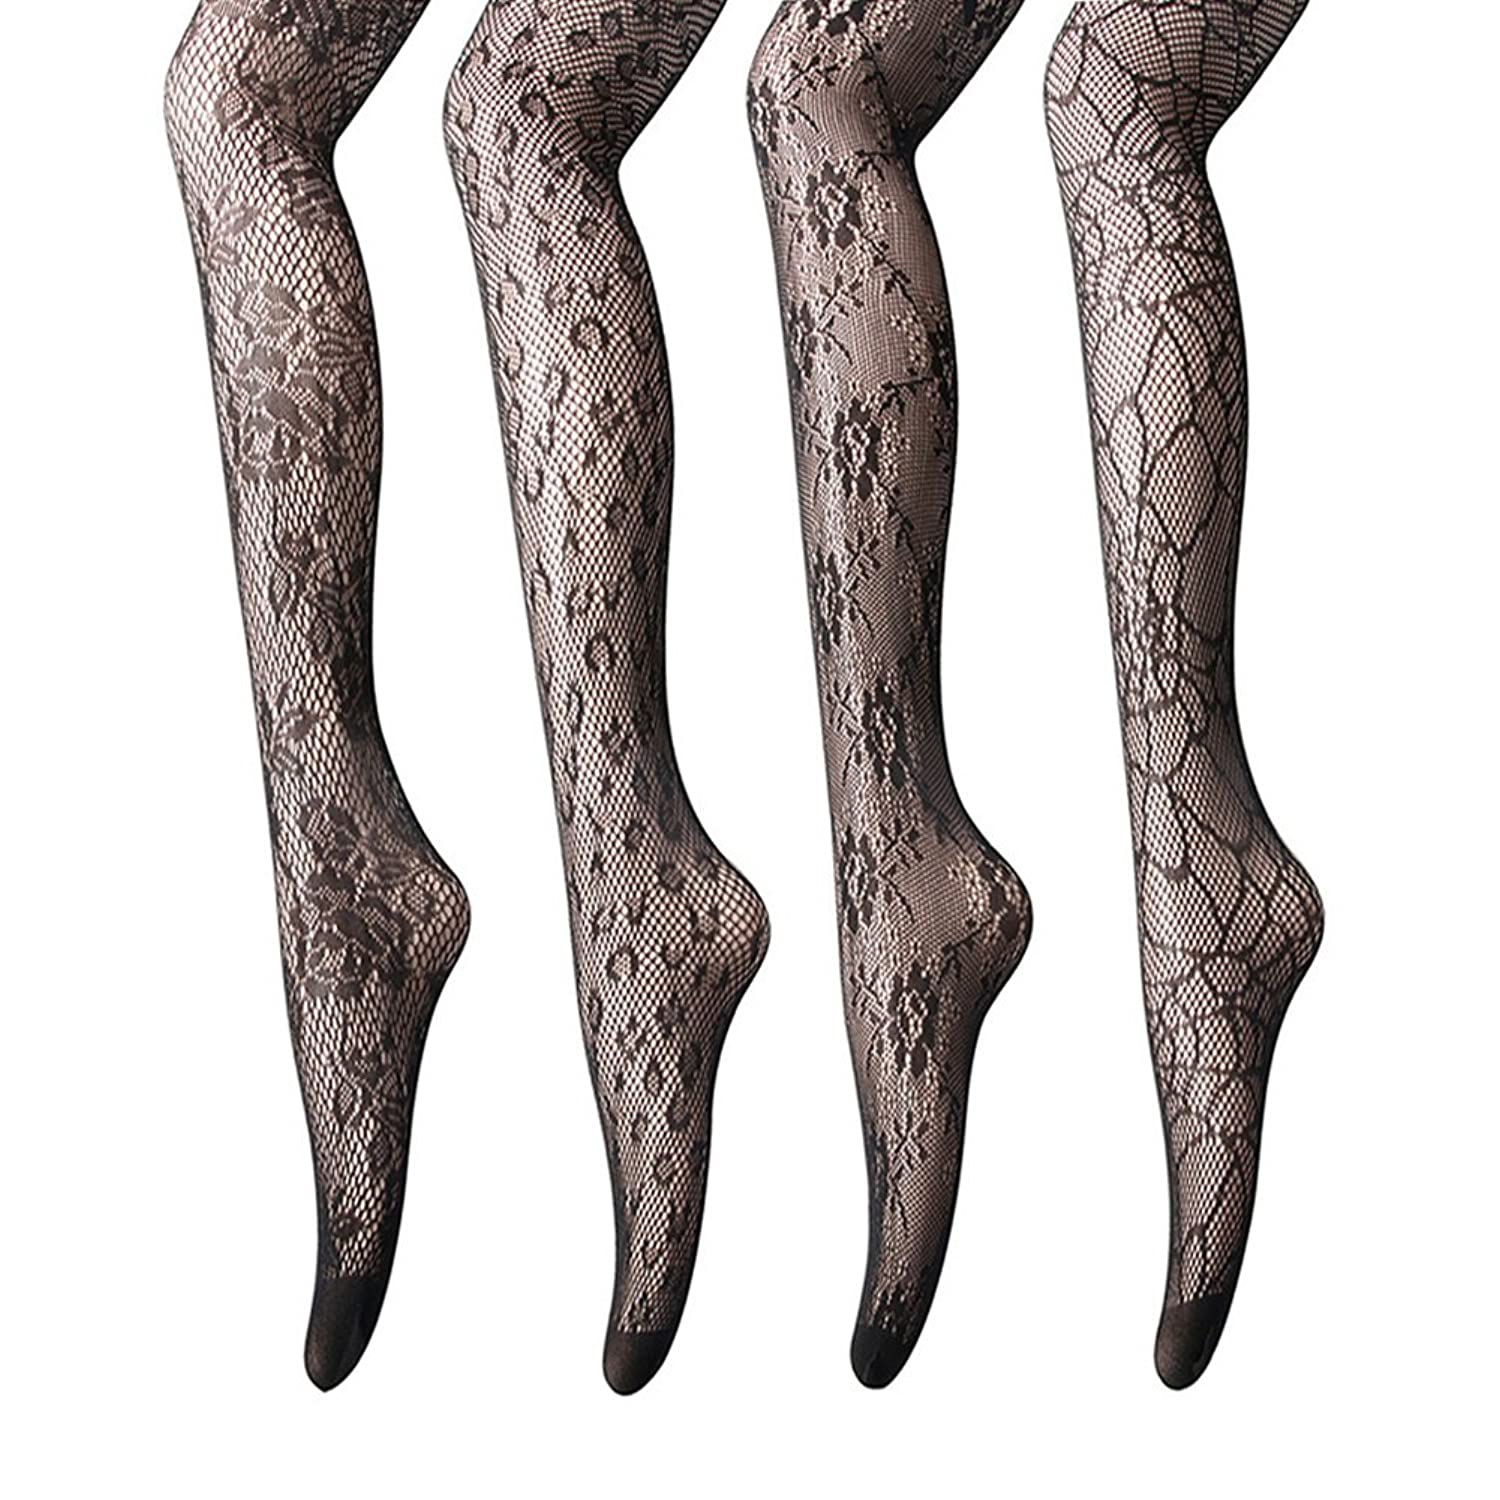 9ee3e694df72c Material : 88% Nylon, 12% Spandex Garment Construction: Tag-less. Control  Type: Stretch Waist Top Pattern: Solid, 4 Size Mesh Hosiery Foot Detail:  Closed ...